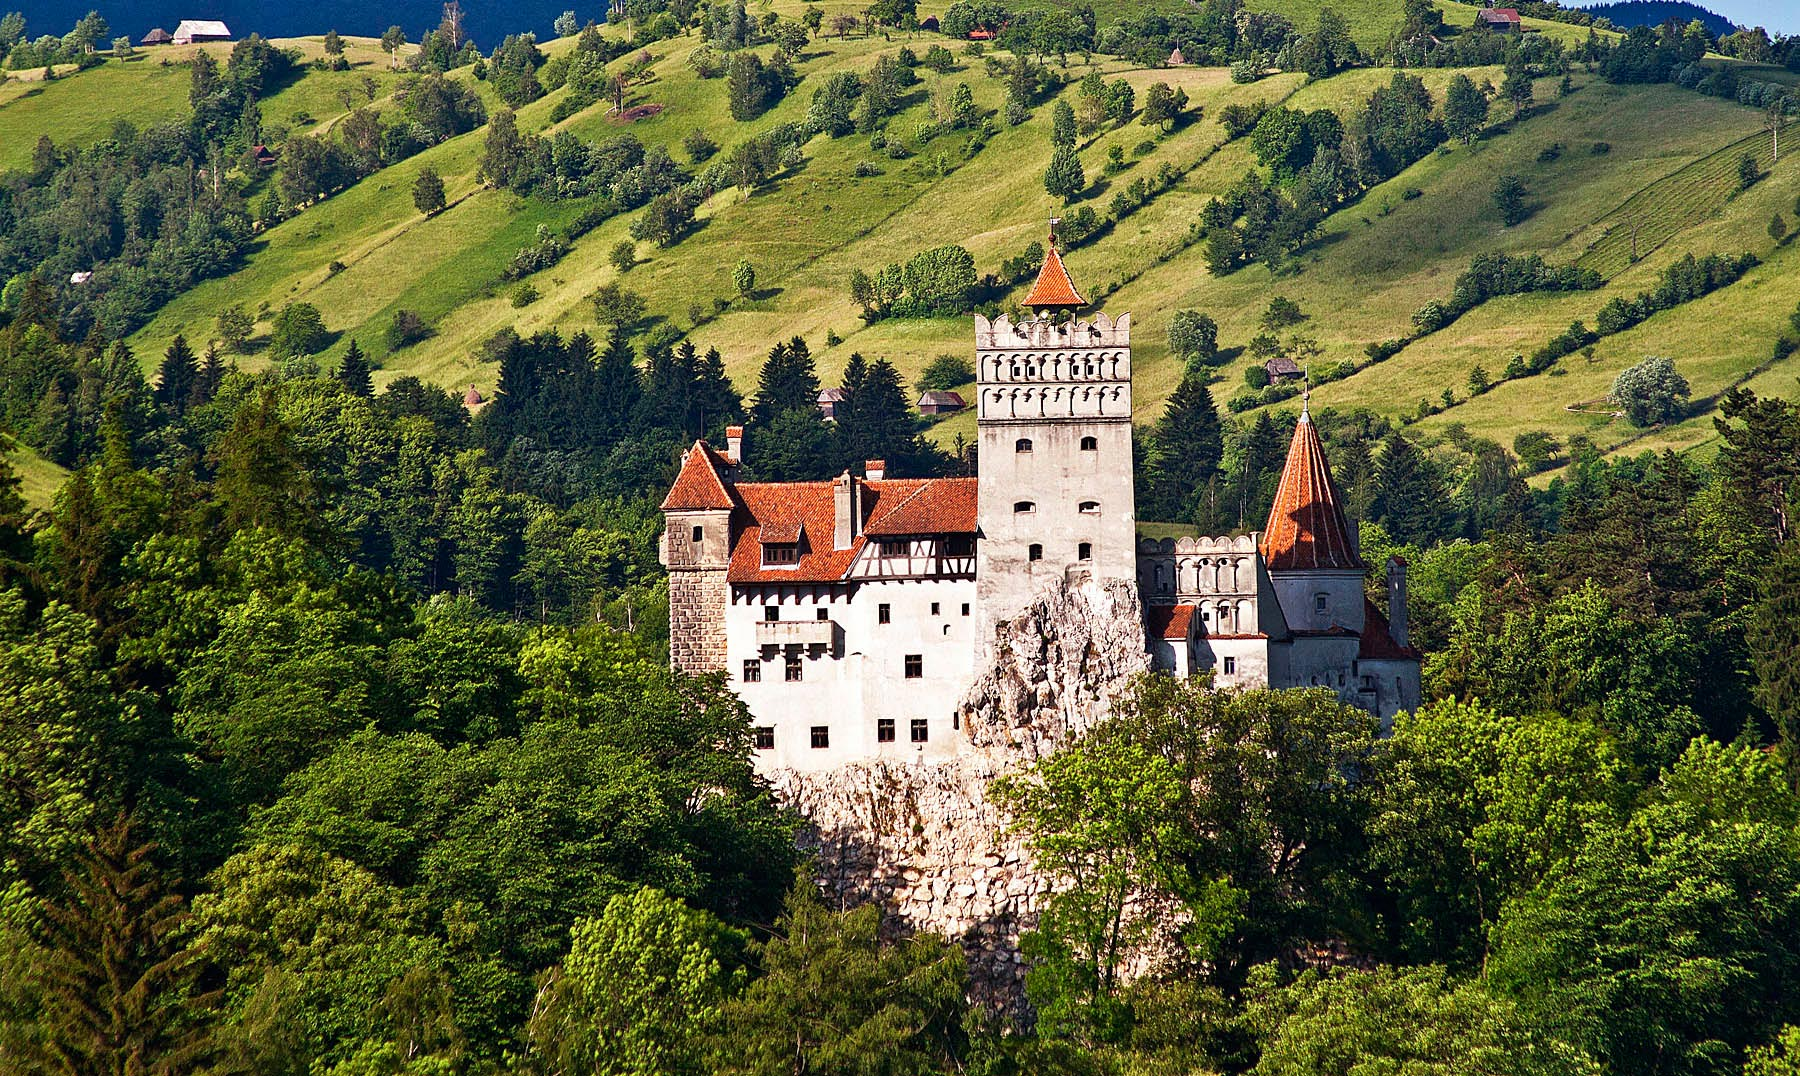 Location, location, location: the castle is nestled in amazing greenery. Image: rolandia.eu